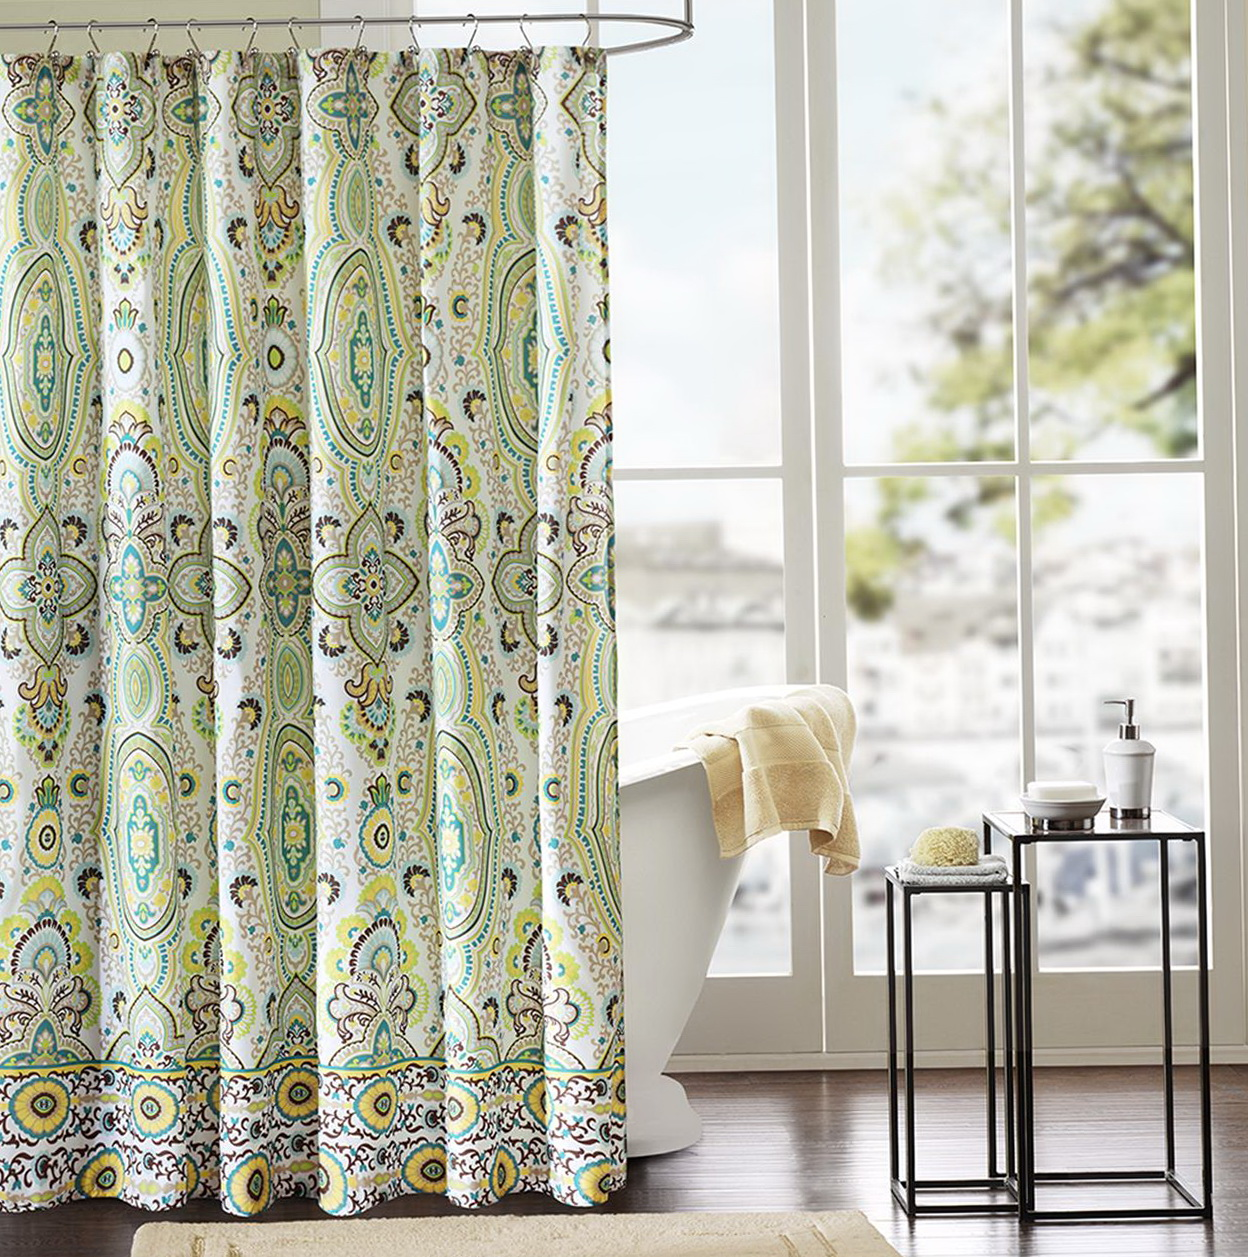 Unique Fabric Shower Curtains Home Design Ideas